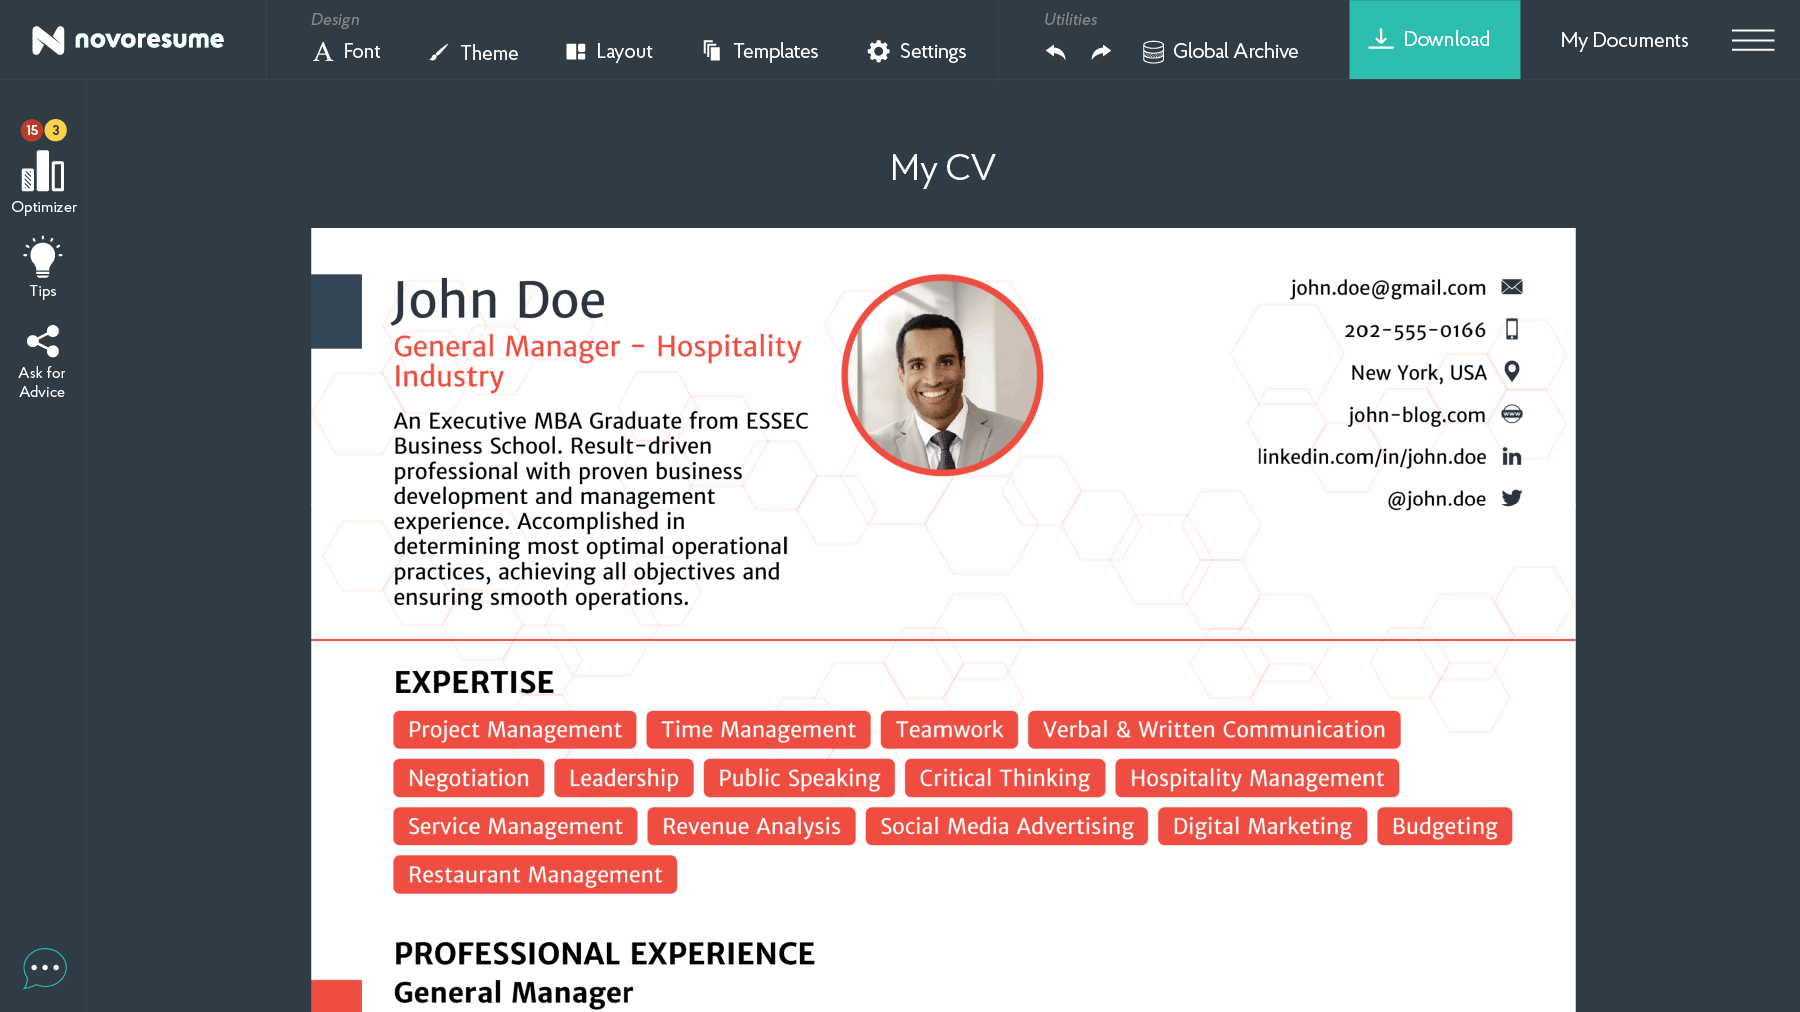 Resume Website Gorgeous Novorésumé [48] Free Professional Resume Builder